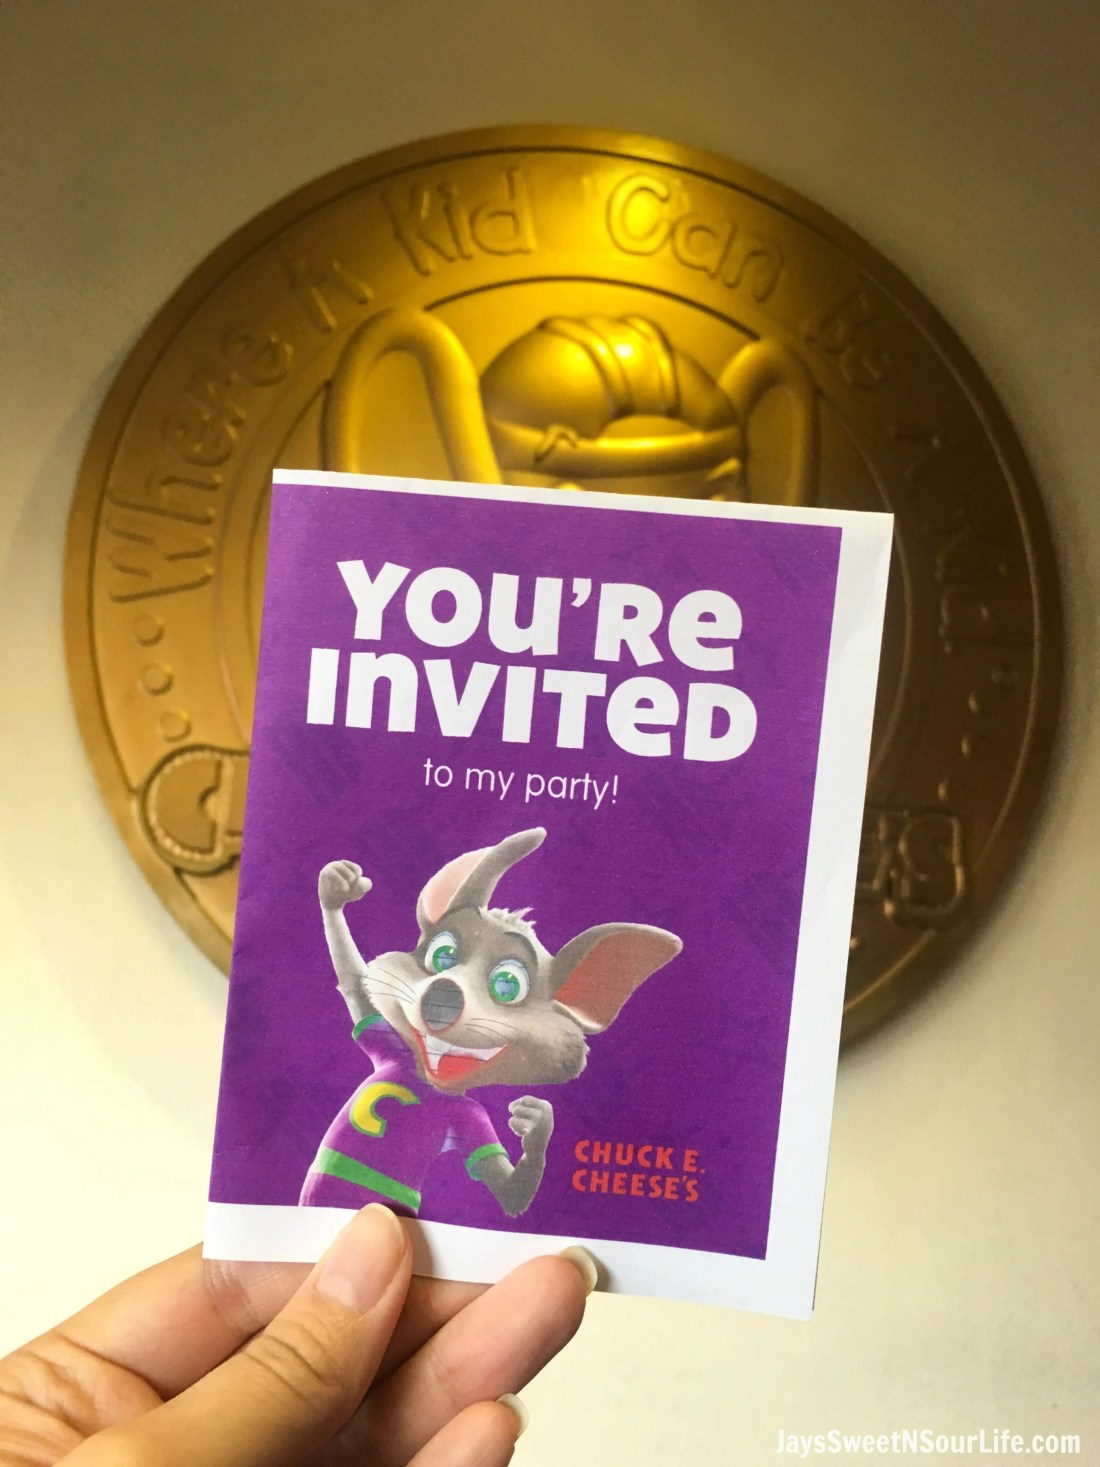 You're invited to book your very own Chuck E. Cheese's VIP Birthday Party. Print out your very own Chuck E. Cheese's themed inviations as well as thank you cards for free when you book online.